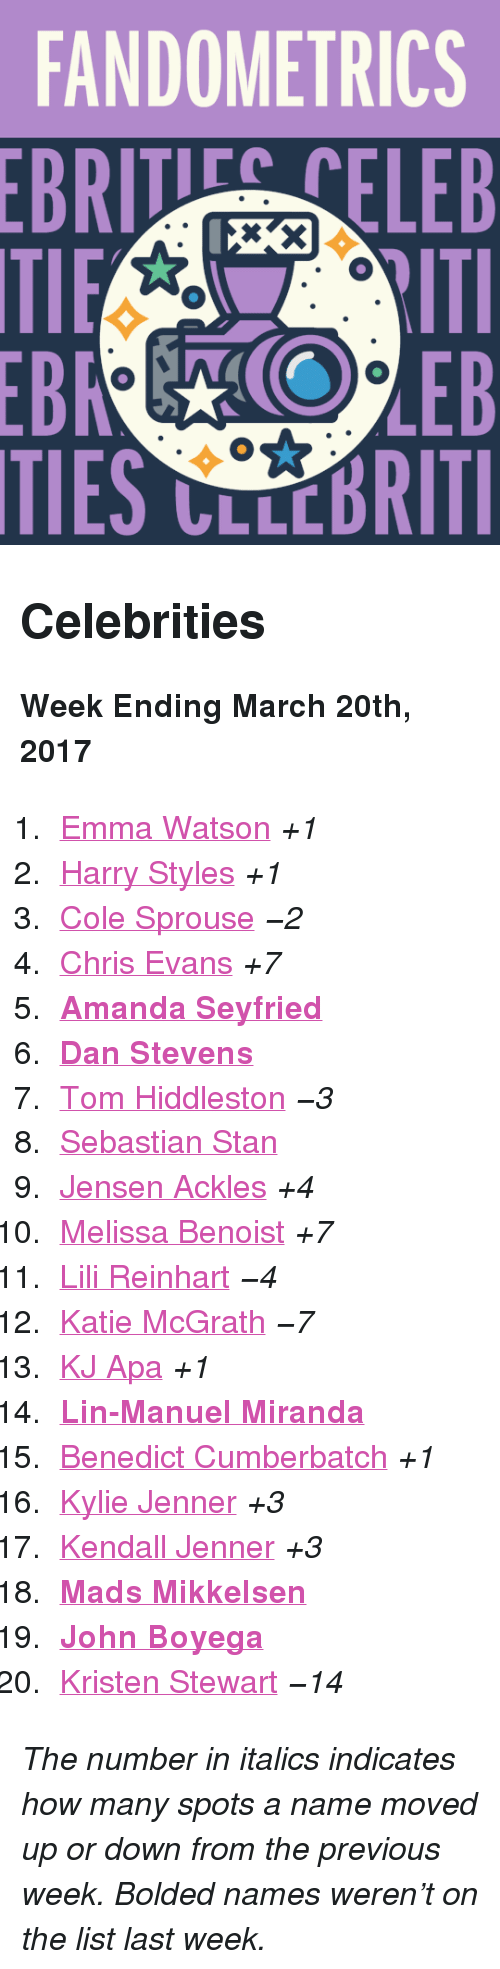 """Kristen Stewart: FANDOMETRICS  BRTELEB  TIES CLLCBRITI <h2>Celebrities</h2><p><b>Week Ending March 20th, 2017</b></p><ol><li><a href=""""http://www.tumblr.com/search/emma%20watson"""">Emma Watson</a><i>+1</i></li>  <li><a href=""""http://www.tumblr.com/search/harry%20styles"""">Harry Styles</a><i>+1</i></li>  <li><a href=""""http://www.tumblr.com/search/cole%20sprouse"""">Cole Sprouse</a><i>−2</i></li>  <li><a href=""""http://www.tumblr.com/search/chris%20evans"""">Chris Evans</a><i>+7</i></li>  <li><a href=""""http://www.tumblr.com/search/amanda%20seyfried""""><b>Amanda Seyfried</b></a></li>  <li><a href=""""http://www.tumblr.com/search/dan%20stevens""""><b>Dan Stevens</b></a></li>  <li><a href=""""http://www.tumblr.com/search/tom%20hiddleston"""">Tom Hiddleston</a><i>−3</i></li>  <li><a href=""""http://www.tumblr.com/search/sebastian%20stan"""">Sebastian Stan</a></li>  <li><a href=""""http://www.tumblr.com/search/jensen%20ackles"""">Jensen Ackles</a><i>+4</i></li>  <li><a href=""""http://www.tumblr.com/search/melissa%20benoist"""">Melissa Benoist</a><i>+7</i></li>  <li><a href=""""http://www.tumblr.com/search/lili%20reinhart"""">Lili Reinhart</a><i>−4</i></li>  <li><a href=""""http://www.tumblr.com/search/katie%20mcgrath"""">Katie McGrath</a><i>−7</i></li>  <li><a href=""""http://www.tumblr.com/search/kj%20apa"""">KJ Apa</a><i>+1</i></li>  <li><a href=""""http://www.tumblr.com/search/lin%20manuel%20miranda""""><b>Lin-Manuel Miranda</b></a></li>  <li><a href=""""http://www.tumblr.com/search/benedict%20cumberbatch"""">Benedict Cumberbatch</a><i>+1</i></li>  <li><a href=""""http://www.tumblr.com/search/kylie%20jenner"""">Kylie Jenner</a><i>+3</i></li>  <li><a href=""""http://www.tumblr.com/search/kendall%20jenner"""">Kendall Jenner</a><i>+3</i></li>  <li><a href=""""http://www.tumblr.com/search/mads%20mikkelsen""""><b>Mads Mikkelsen</b></a></li>  <li><a href=""""http://www.tumblr.com/search/john%20boyega""""><b>John Boyega</b></a></li>  <li><a href=""""http://www.tumblr.com/search/kristen%20stewart"""">Kristen Stewart</a><i>−14</i></li></ol><p><i>The number in italics indicates how ma"""